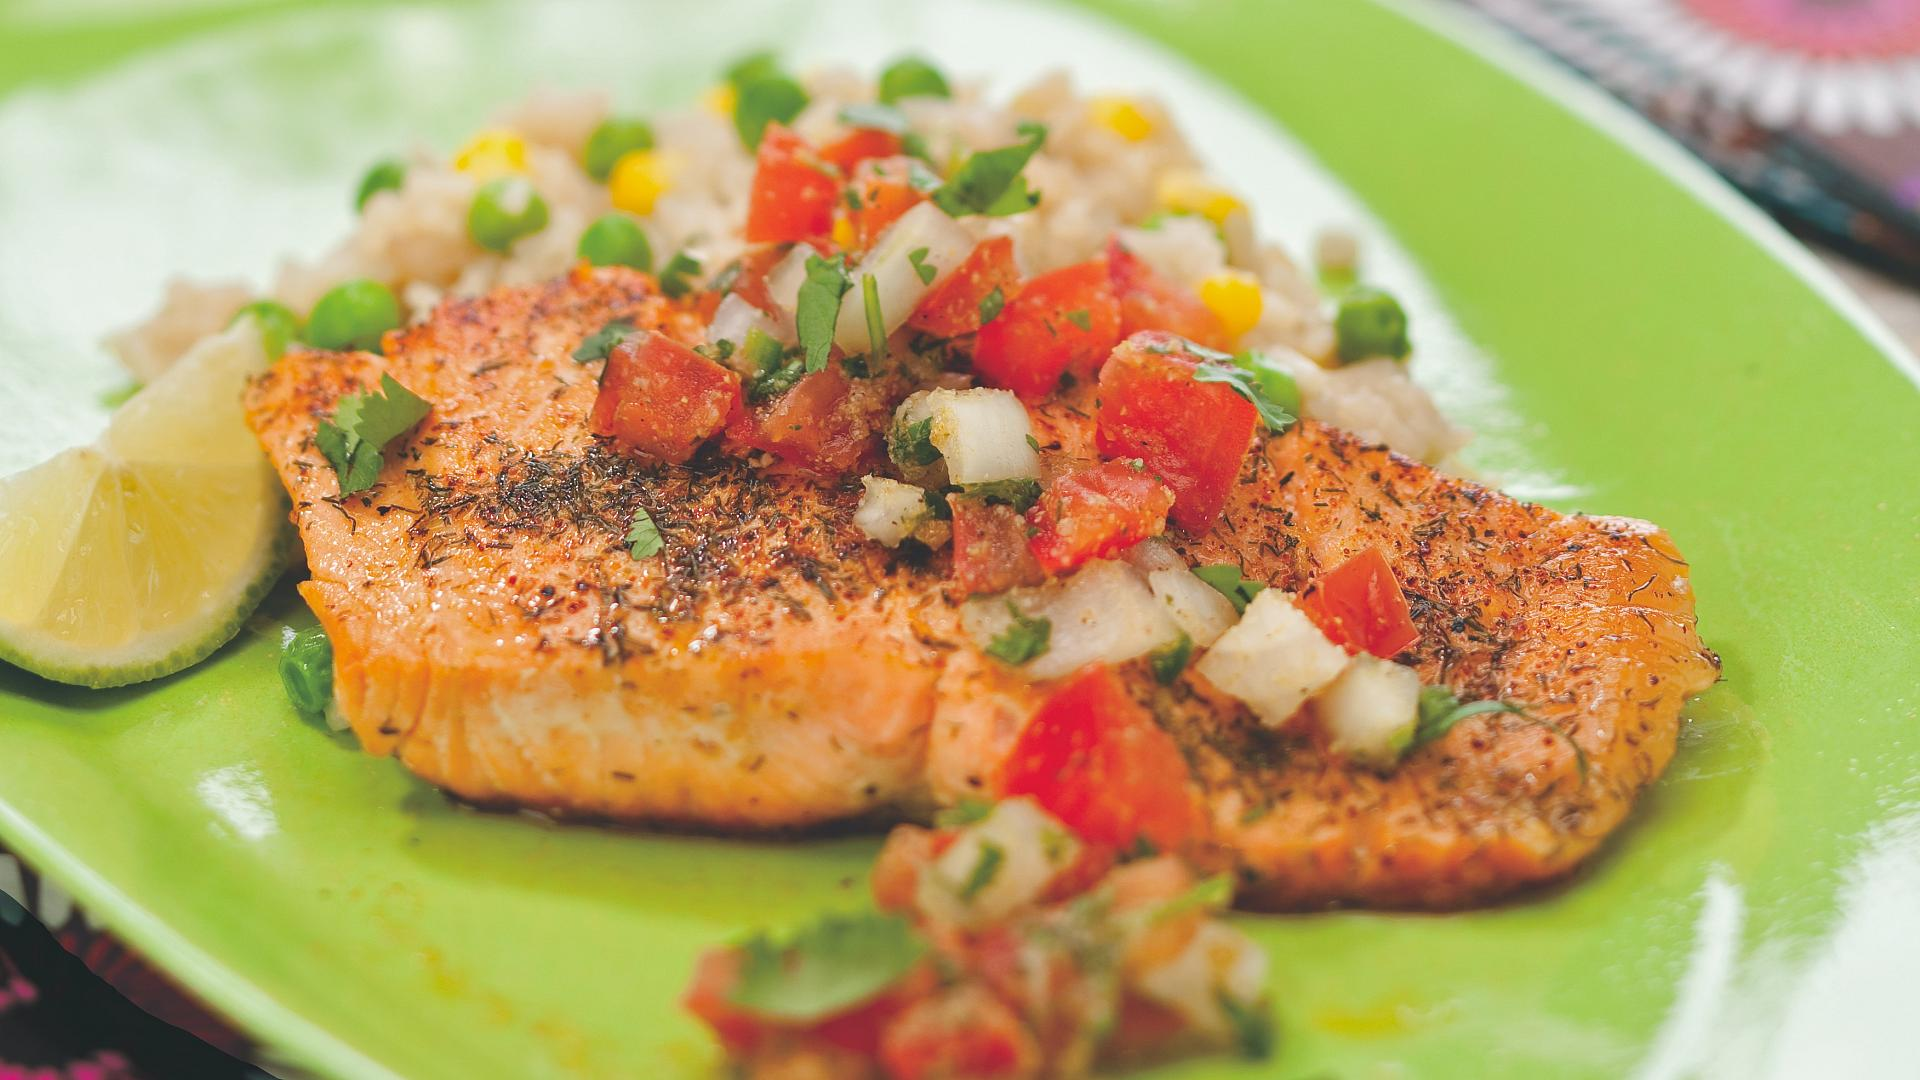 Tequila trout